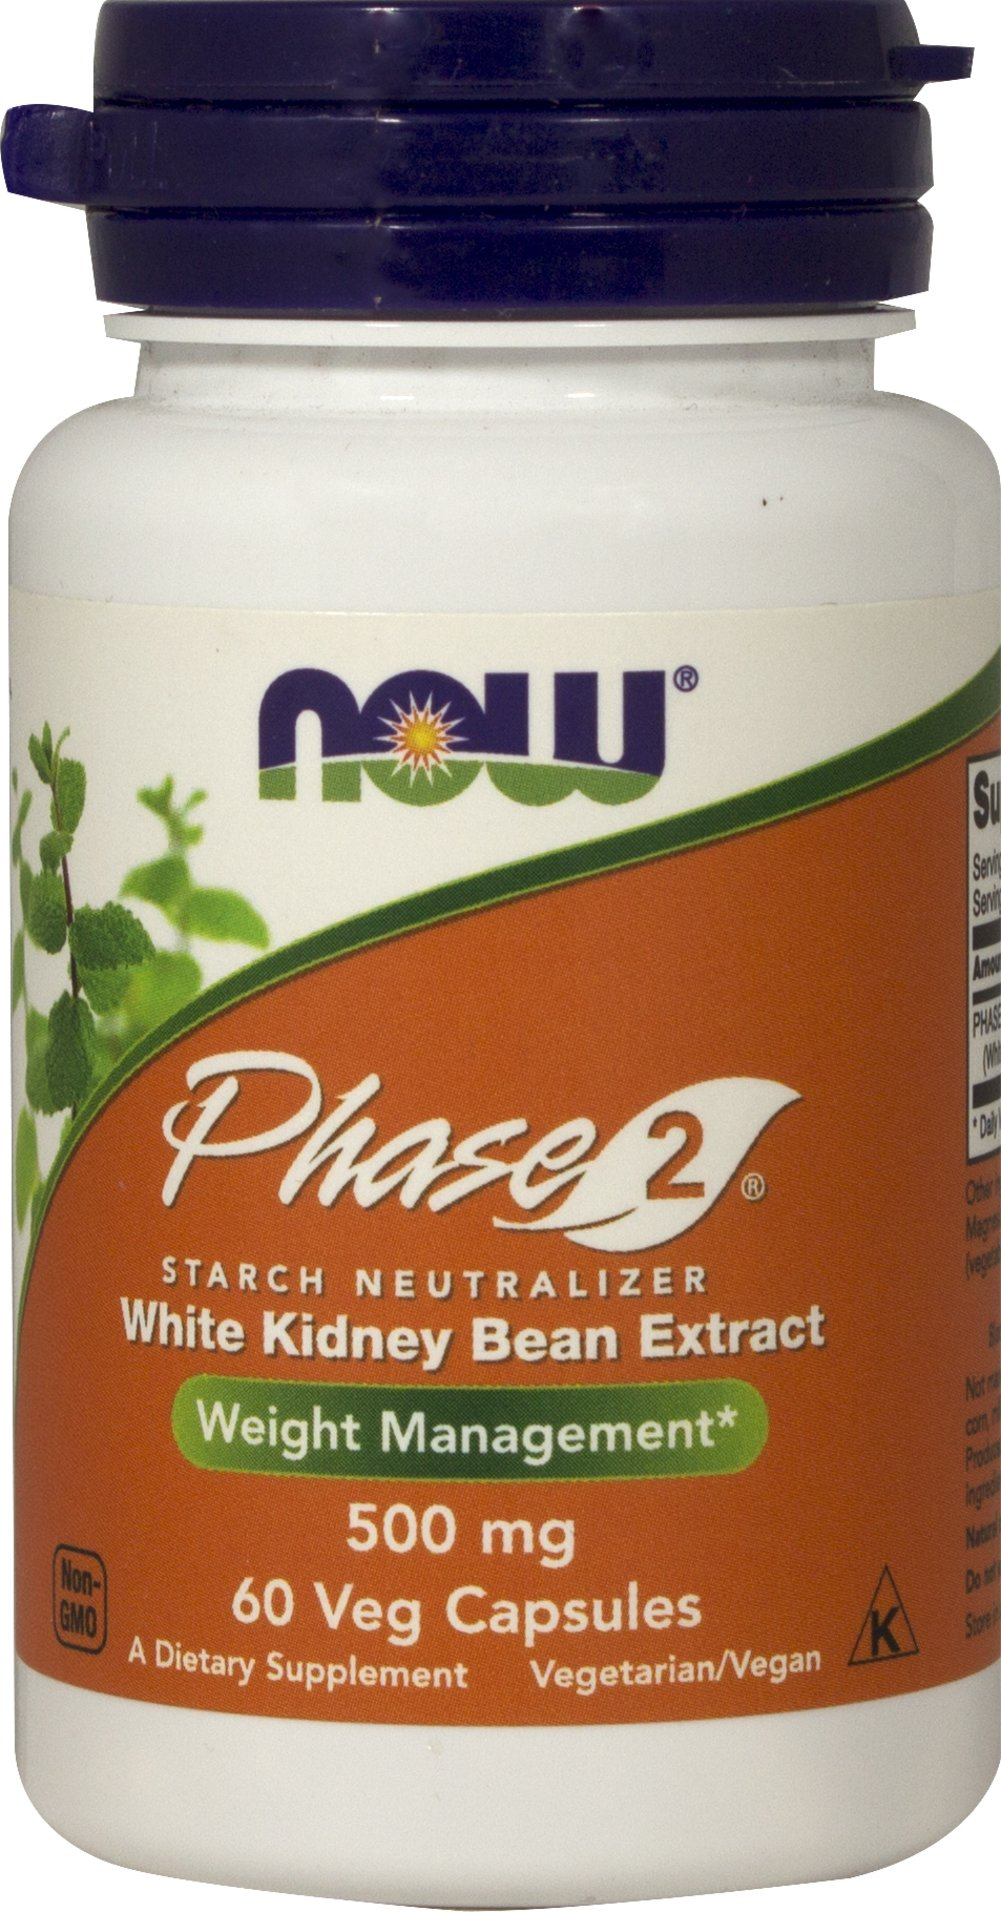 Phase 2 Starch Neutralizer <strong></strong><p><strong>From the manufacturer's Label</strong></p><p>NOW® PHASE 2® helps you achieve dietary management objectives without the use of stimulants or laxatives. PHASE 2® is an all-natural bean extract that has been shown in non-clinical studies to help reduce the breakdown and absorption of complex carbohydrates, by limiting the action of alpha-amylase, a digestive enzyme.  Alpha-amylase hel